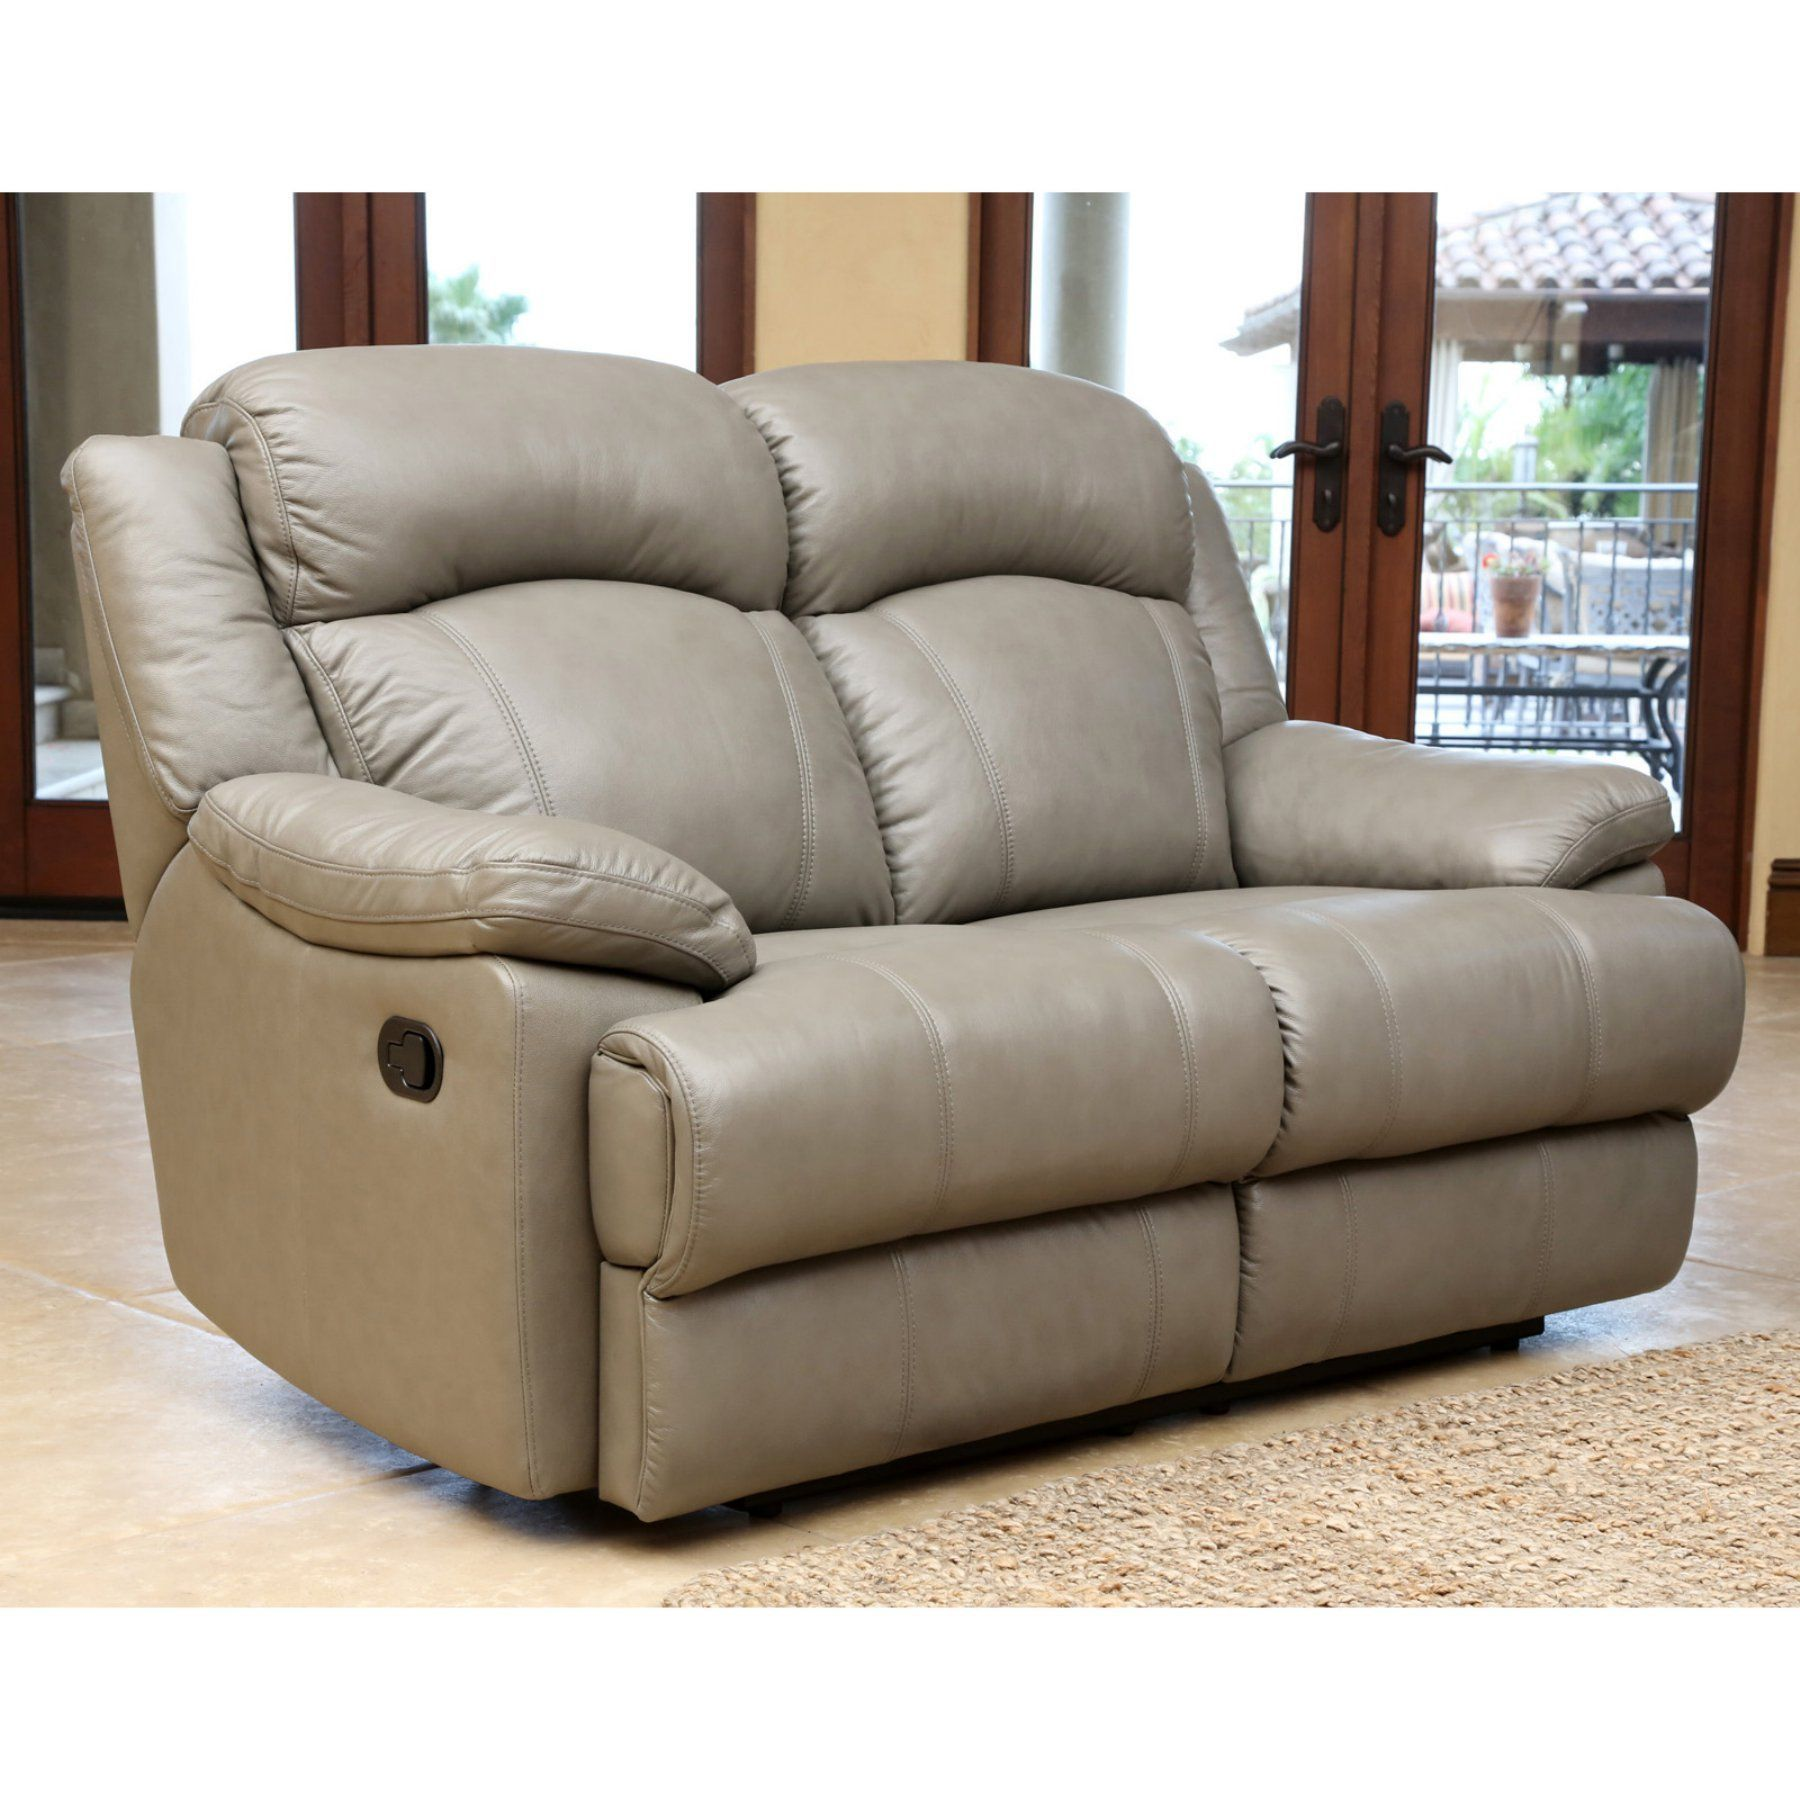 Wondrous Abbyson Bethany Reclining Leather Loveseat Cx 6118 Gry 2 Pdpeps Interior Chair Design Pdpepsorg